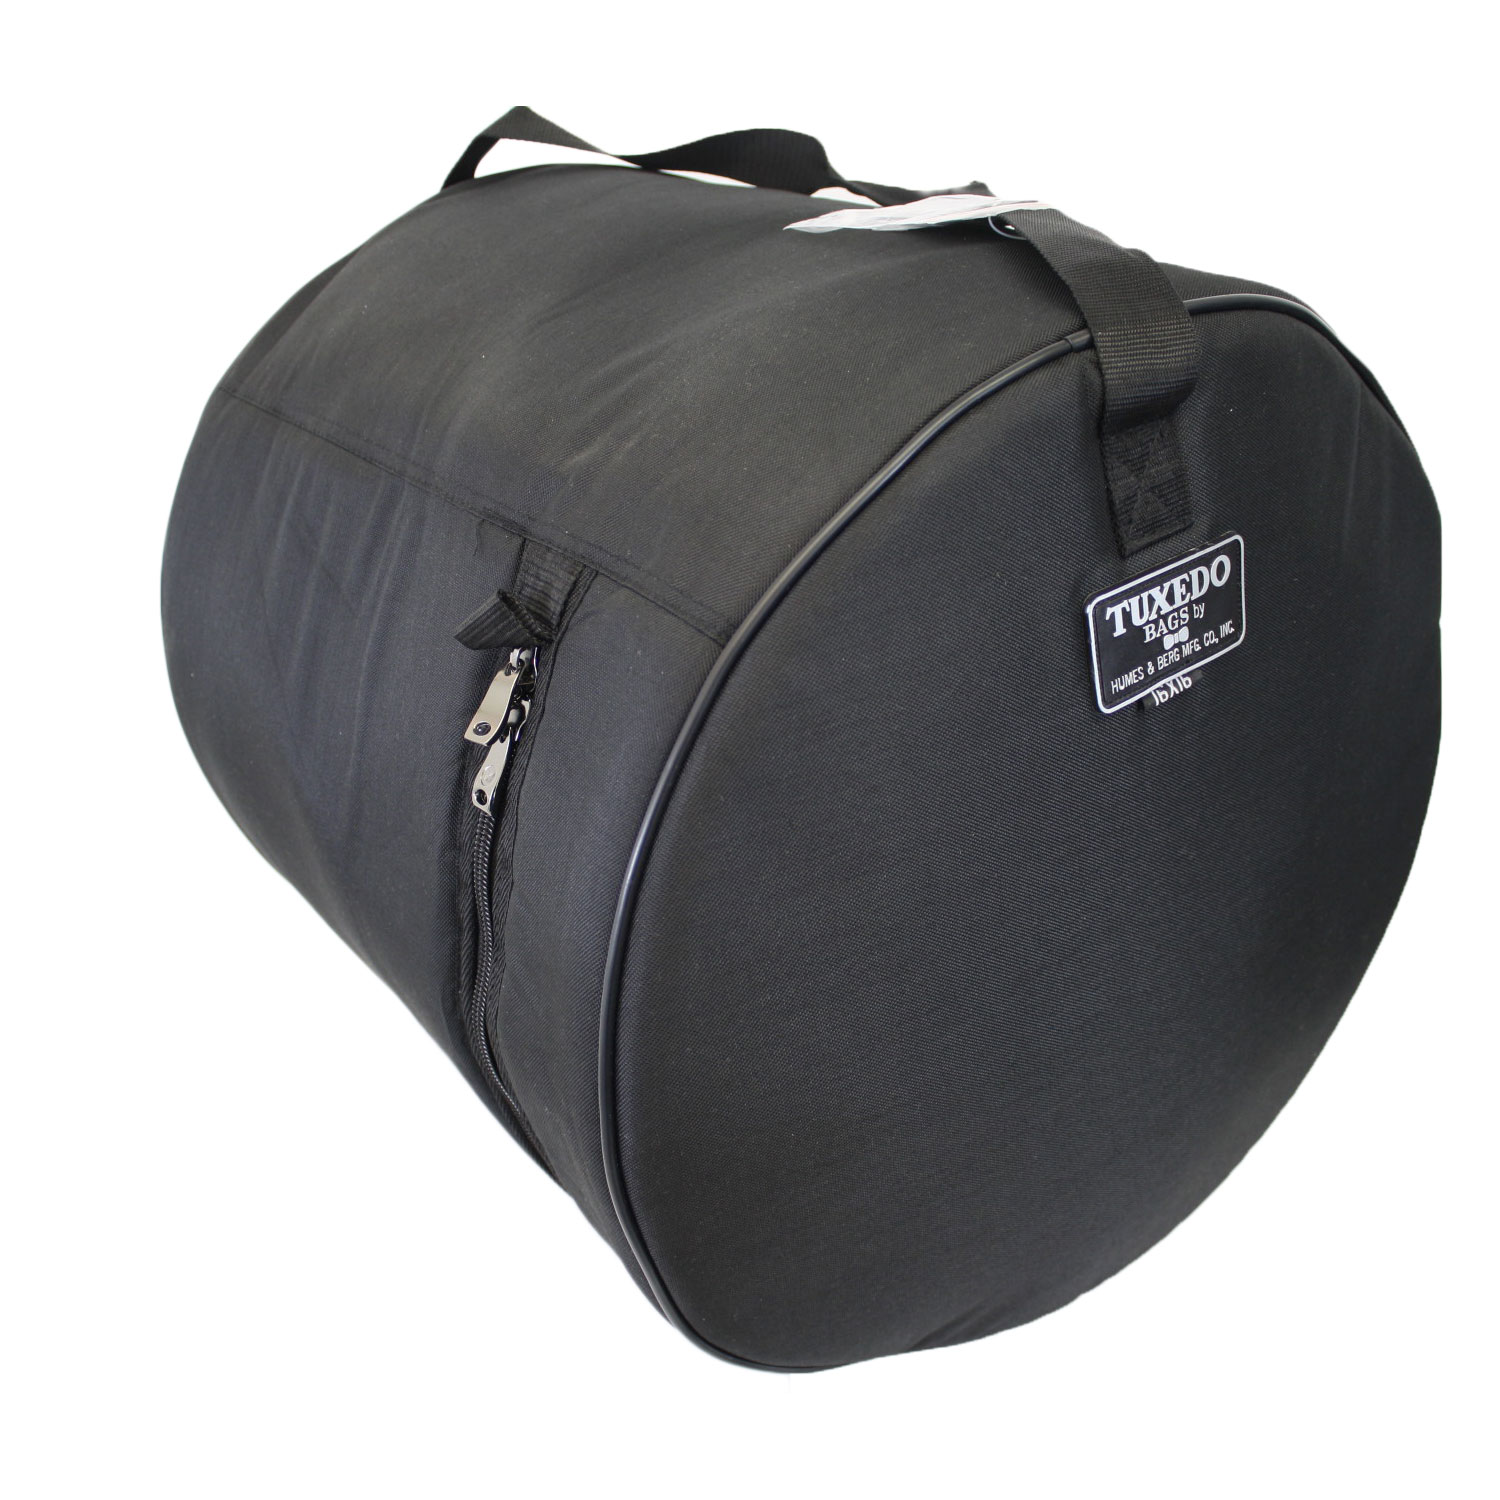 "Humes & Berg 16"" (Deep) x 16"" (Diameter) Tuxedo Floor Tom Bag/Soft Case"